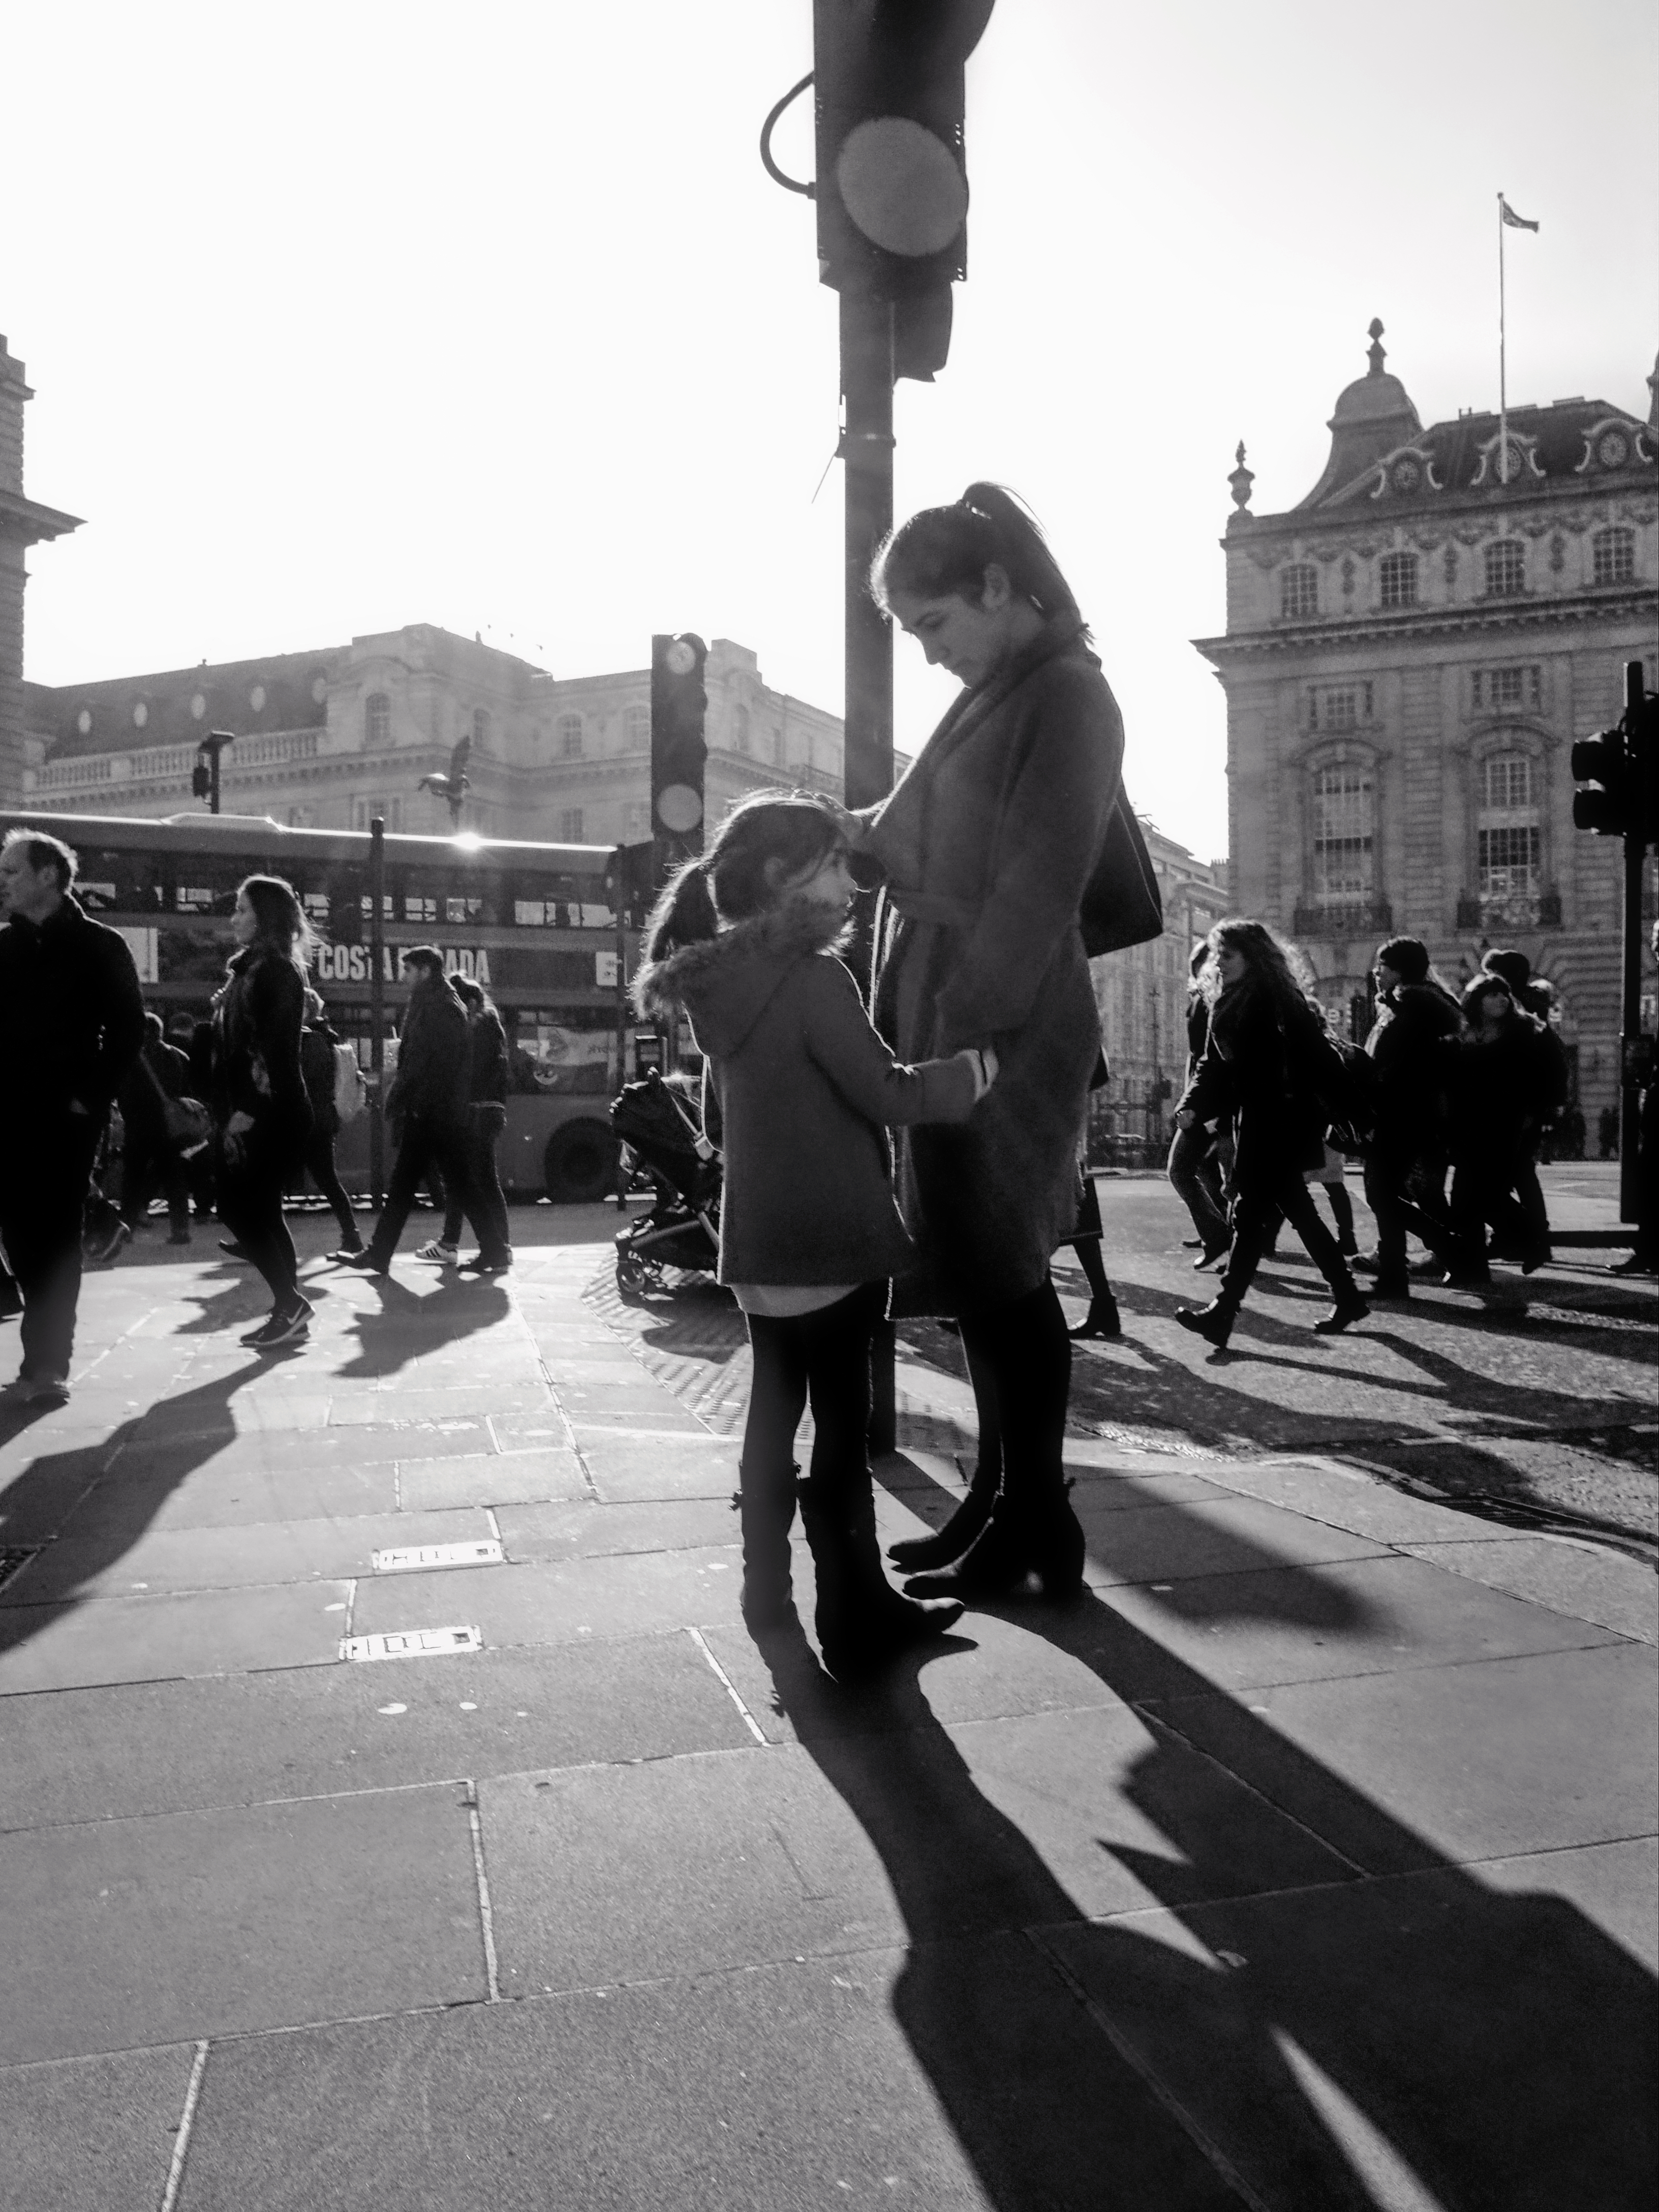 Piccadilly, London, February 2017